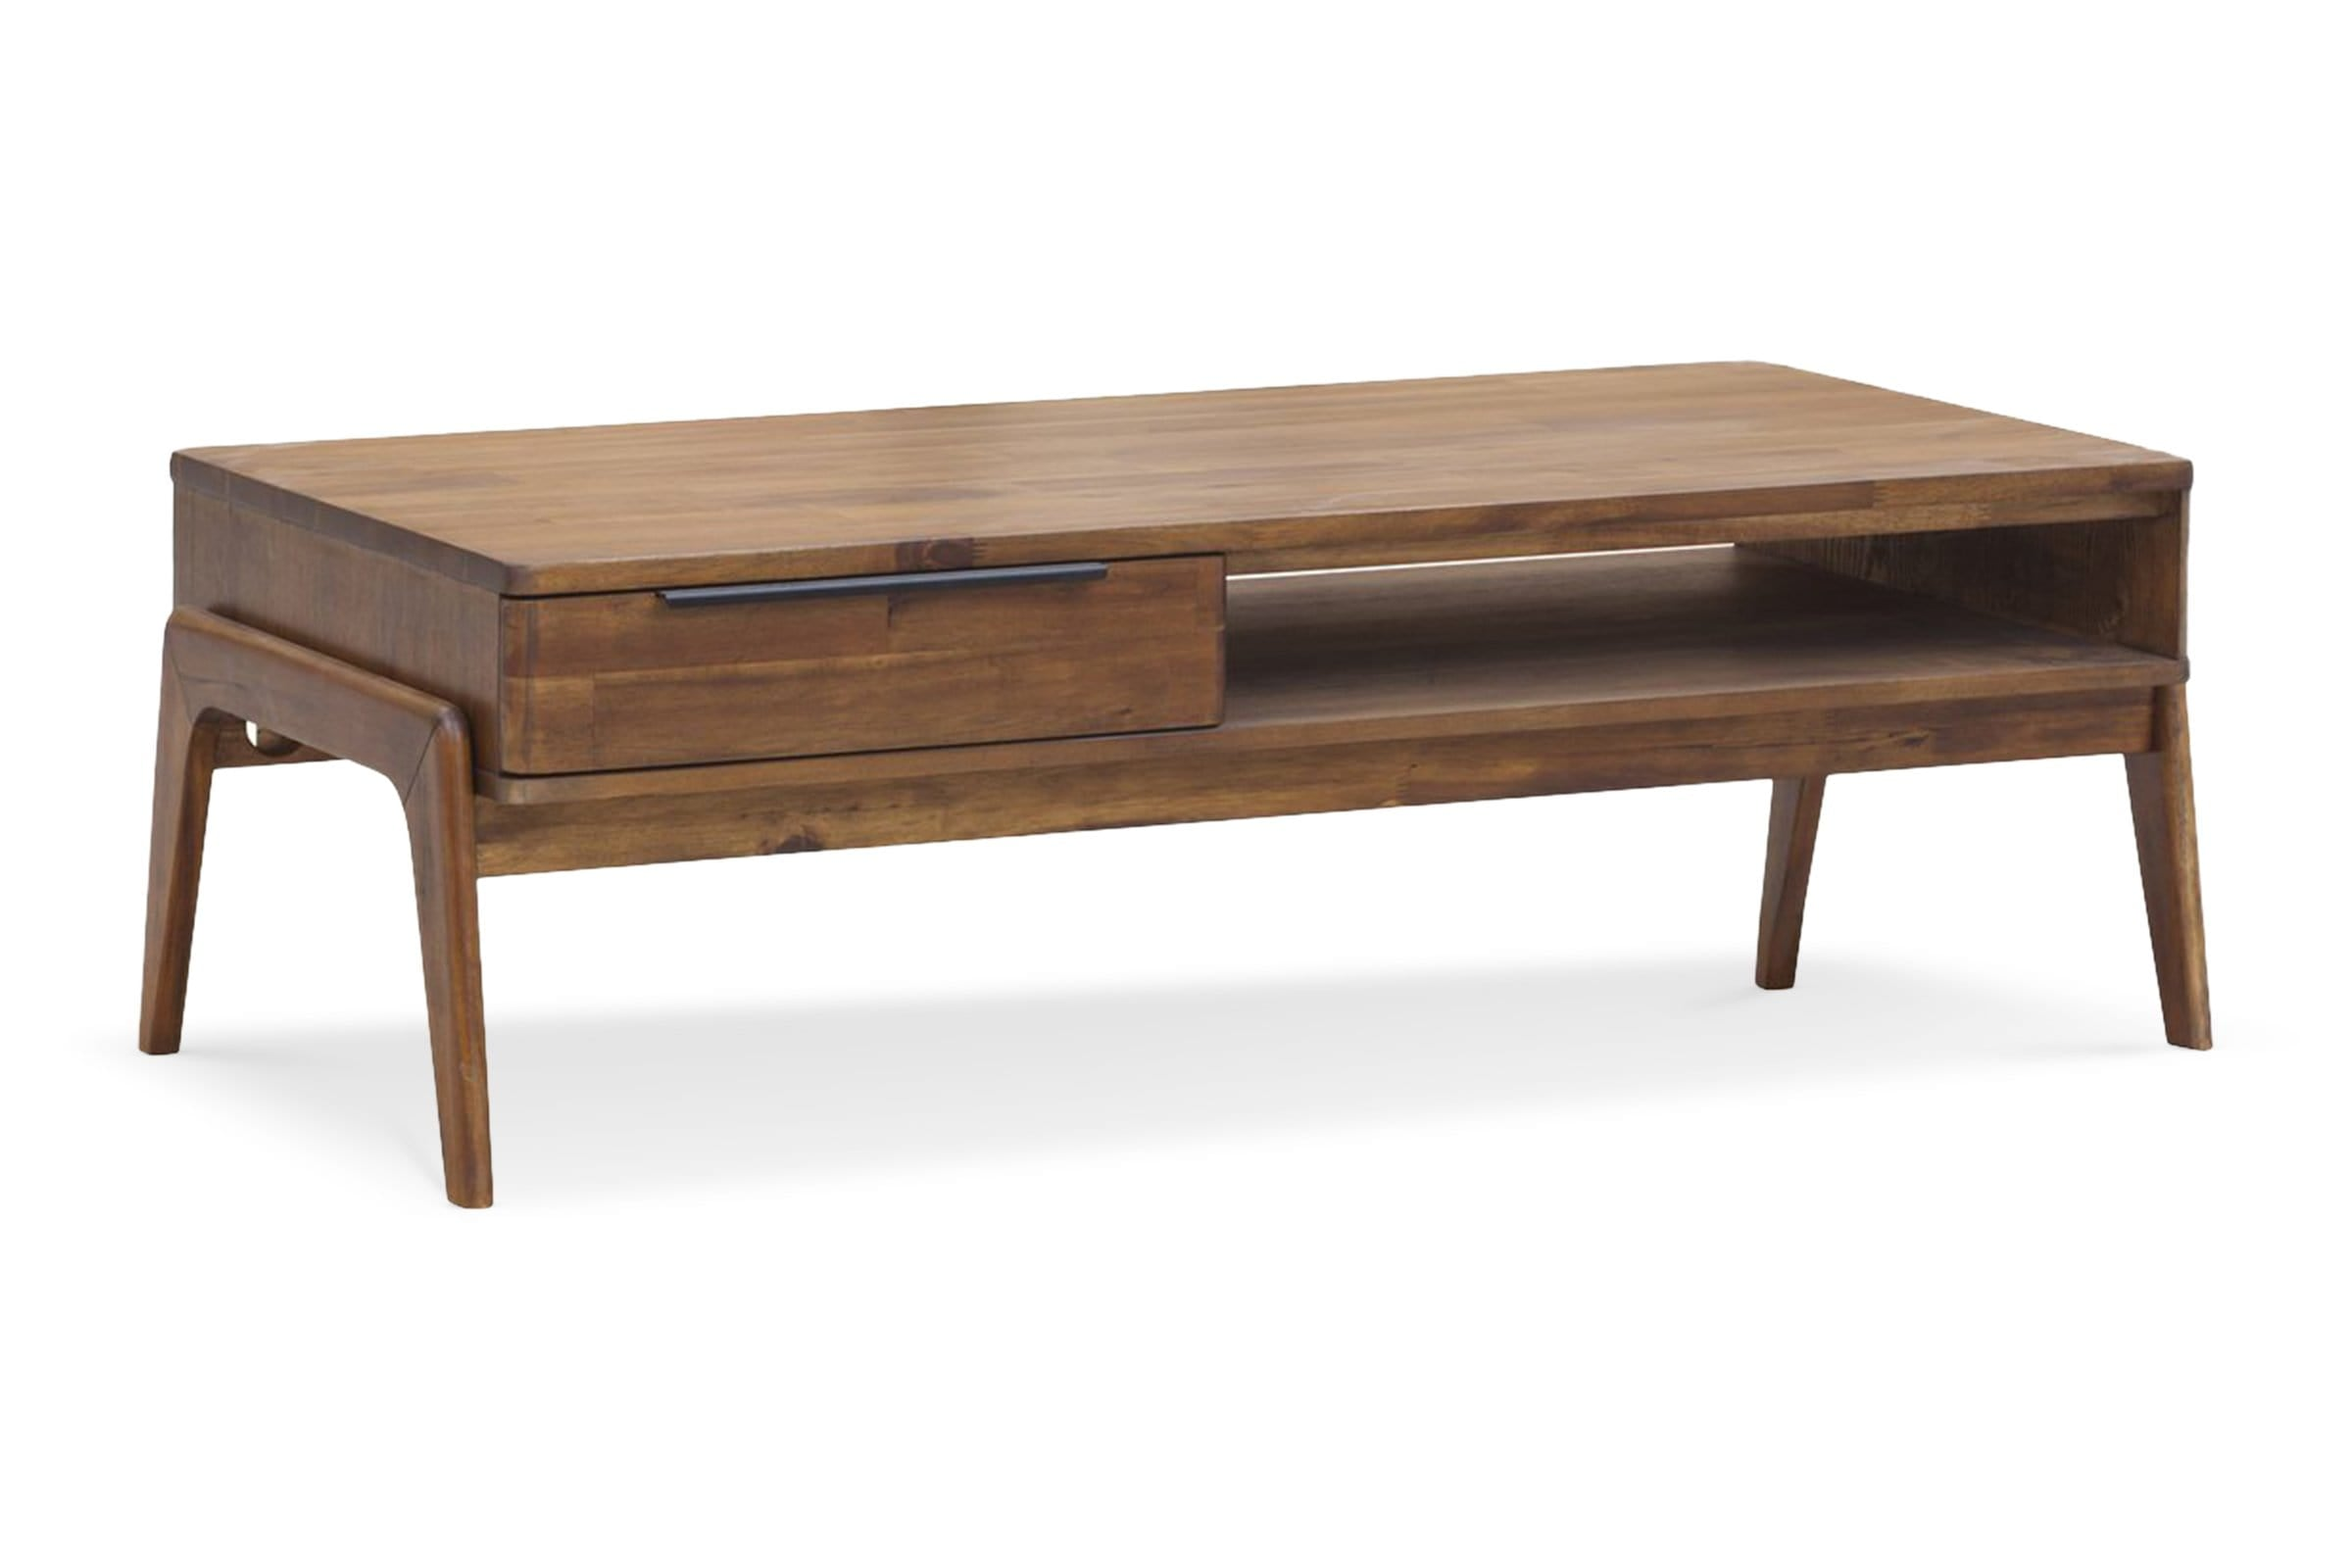 Aiken_Coffee_Table__Soild_Wood__MidCentury_Modern____Living_Room_Furniture_sold_by_Apt2B